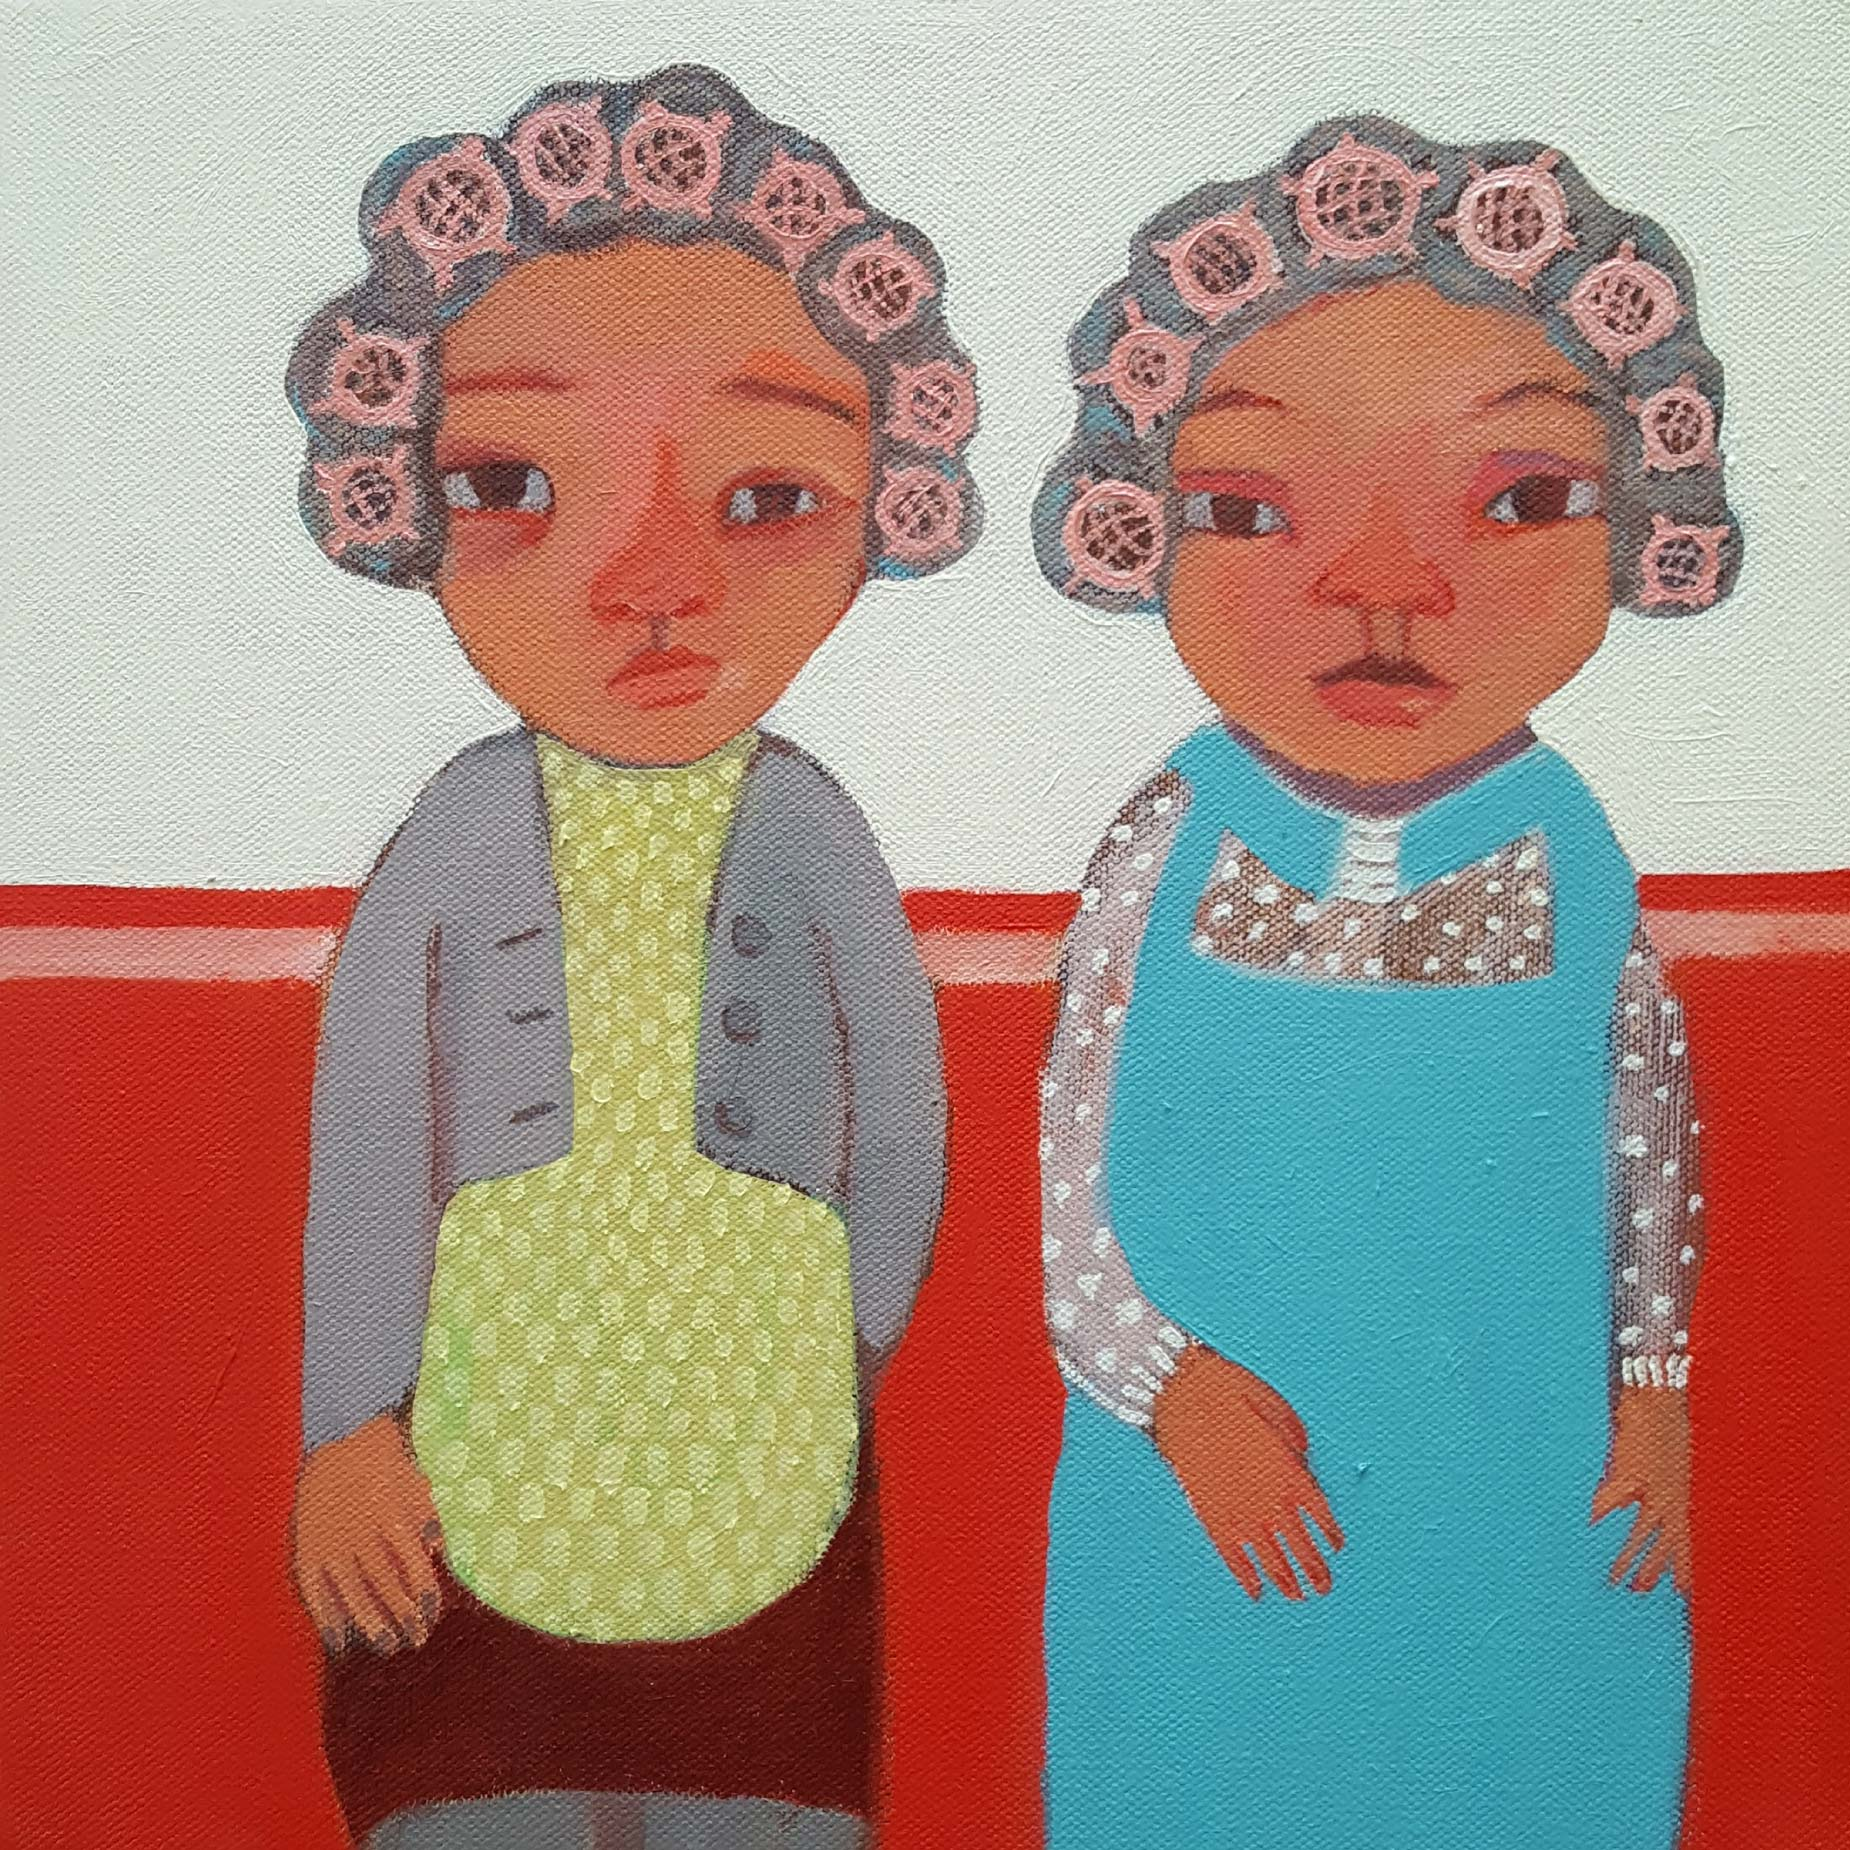 'Salon Ladies' by Siobhan Purdy